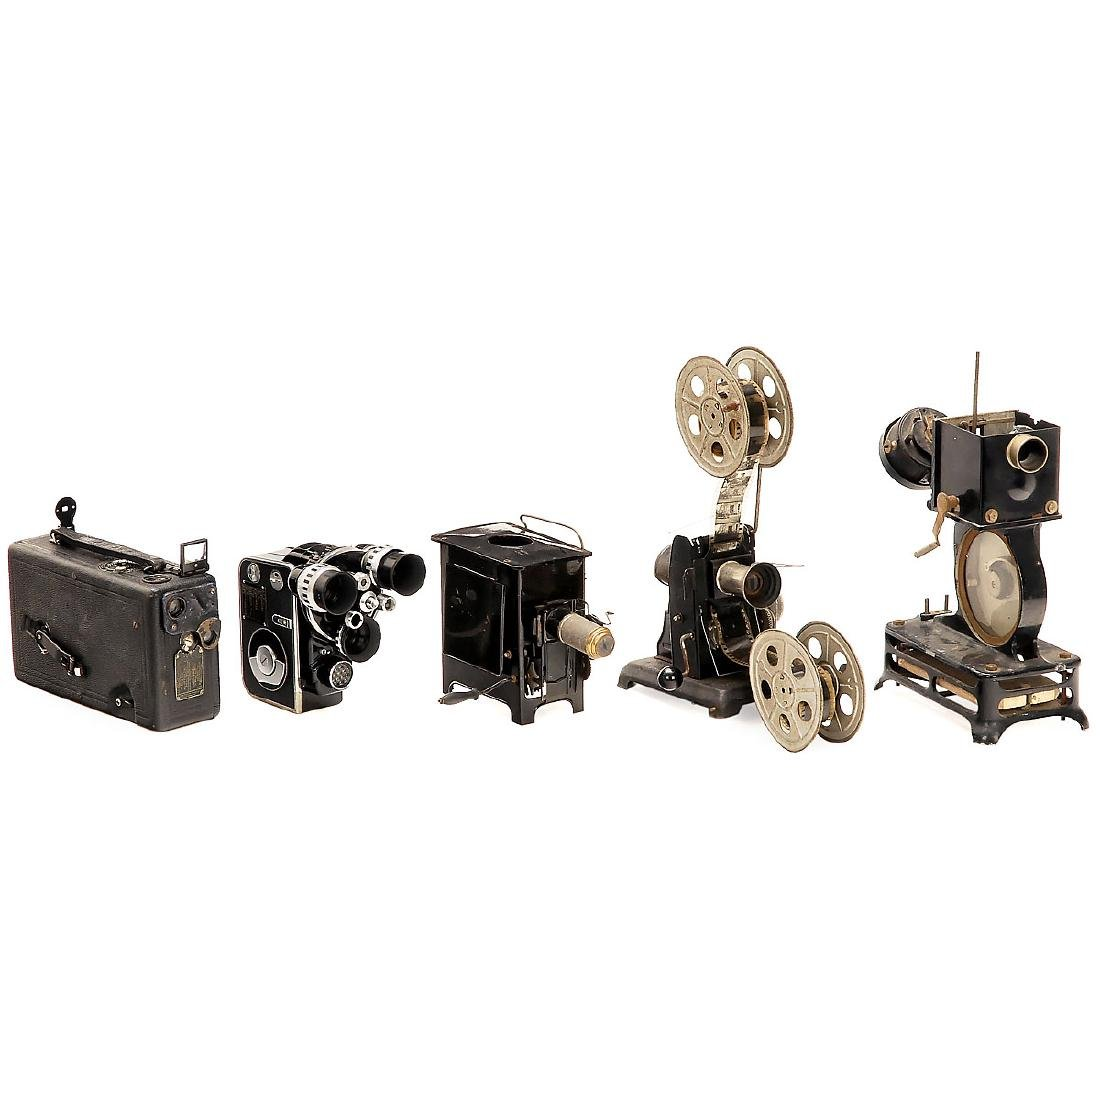 Laterna Magicas and Movie Projectors (Spare Parts) - 3